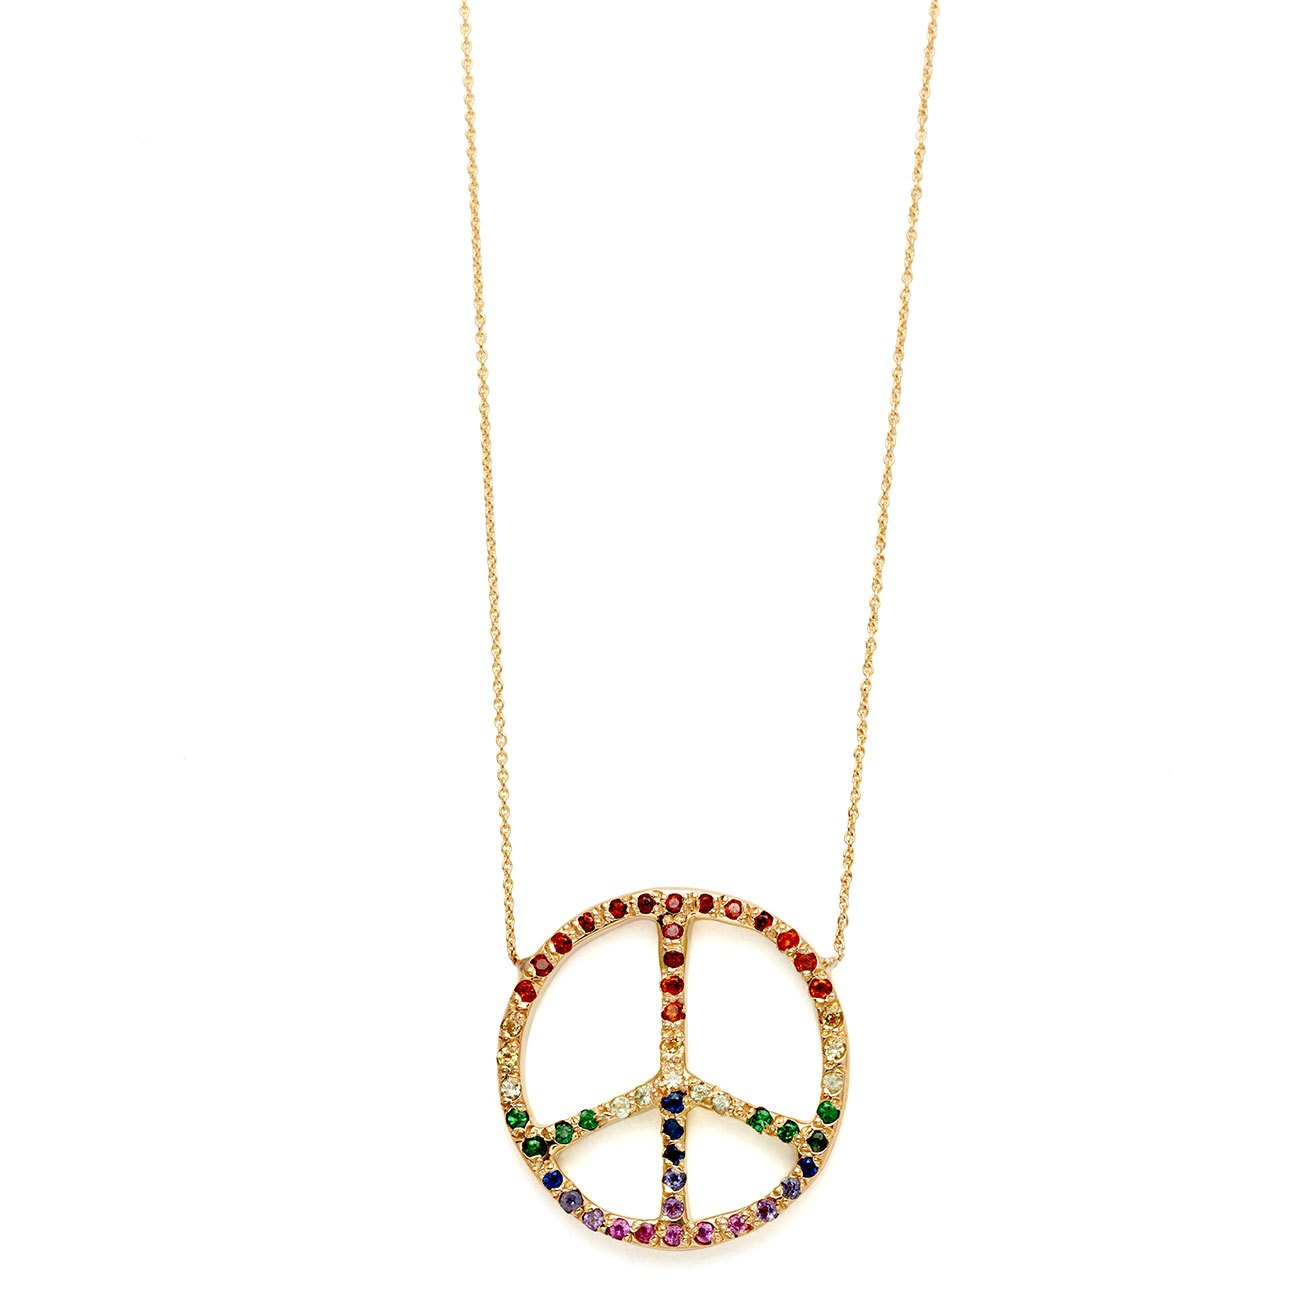 Ombre Rainbow Peace Sign Necklace (garnet, citrine, yellow sapphire, peridot, tsavorite, blue sapphire, iolite, amethyst, rhodolite, and pink sapphire), $2,760 @elisasolomon.com